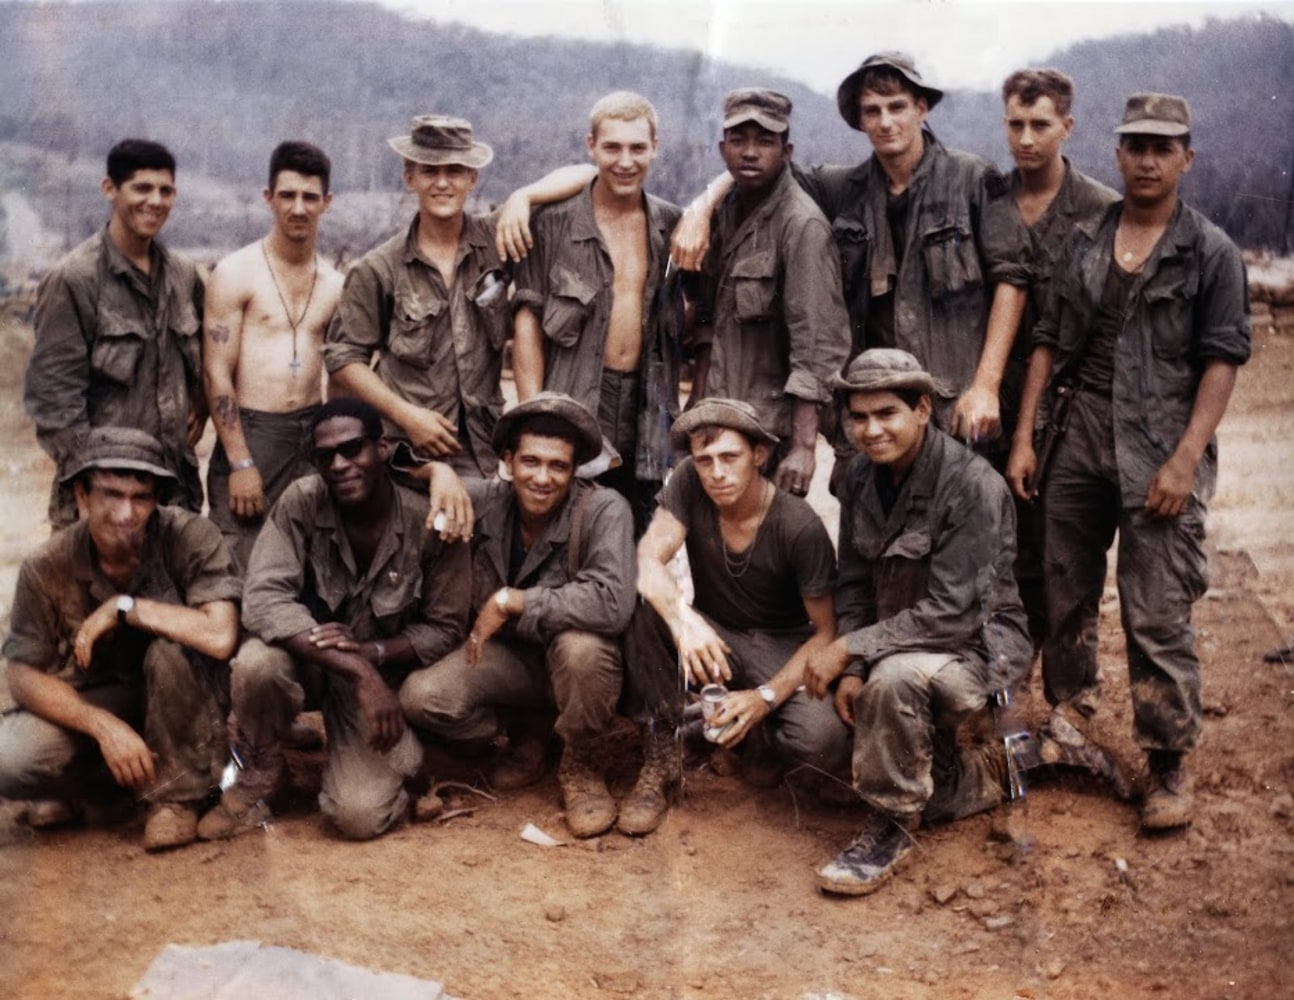 hispanics in vietnam Vietnam war casualties by race, ethnicity and natl origin permission granted to link this site to your webpage the dod database contains no info on hispanic-amer casualties hispanics.